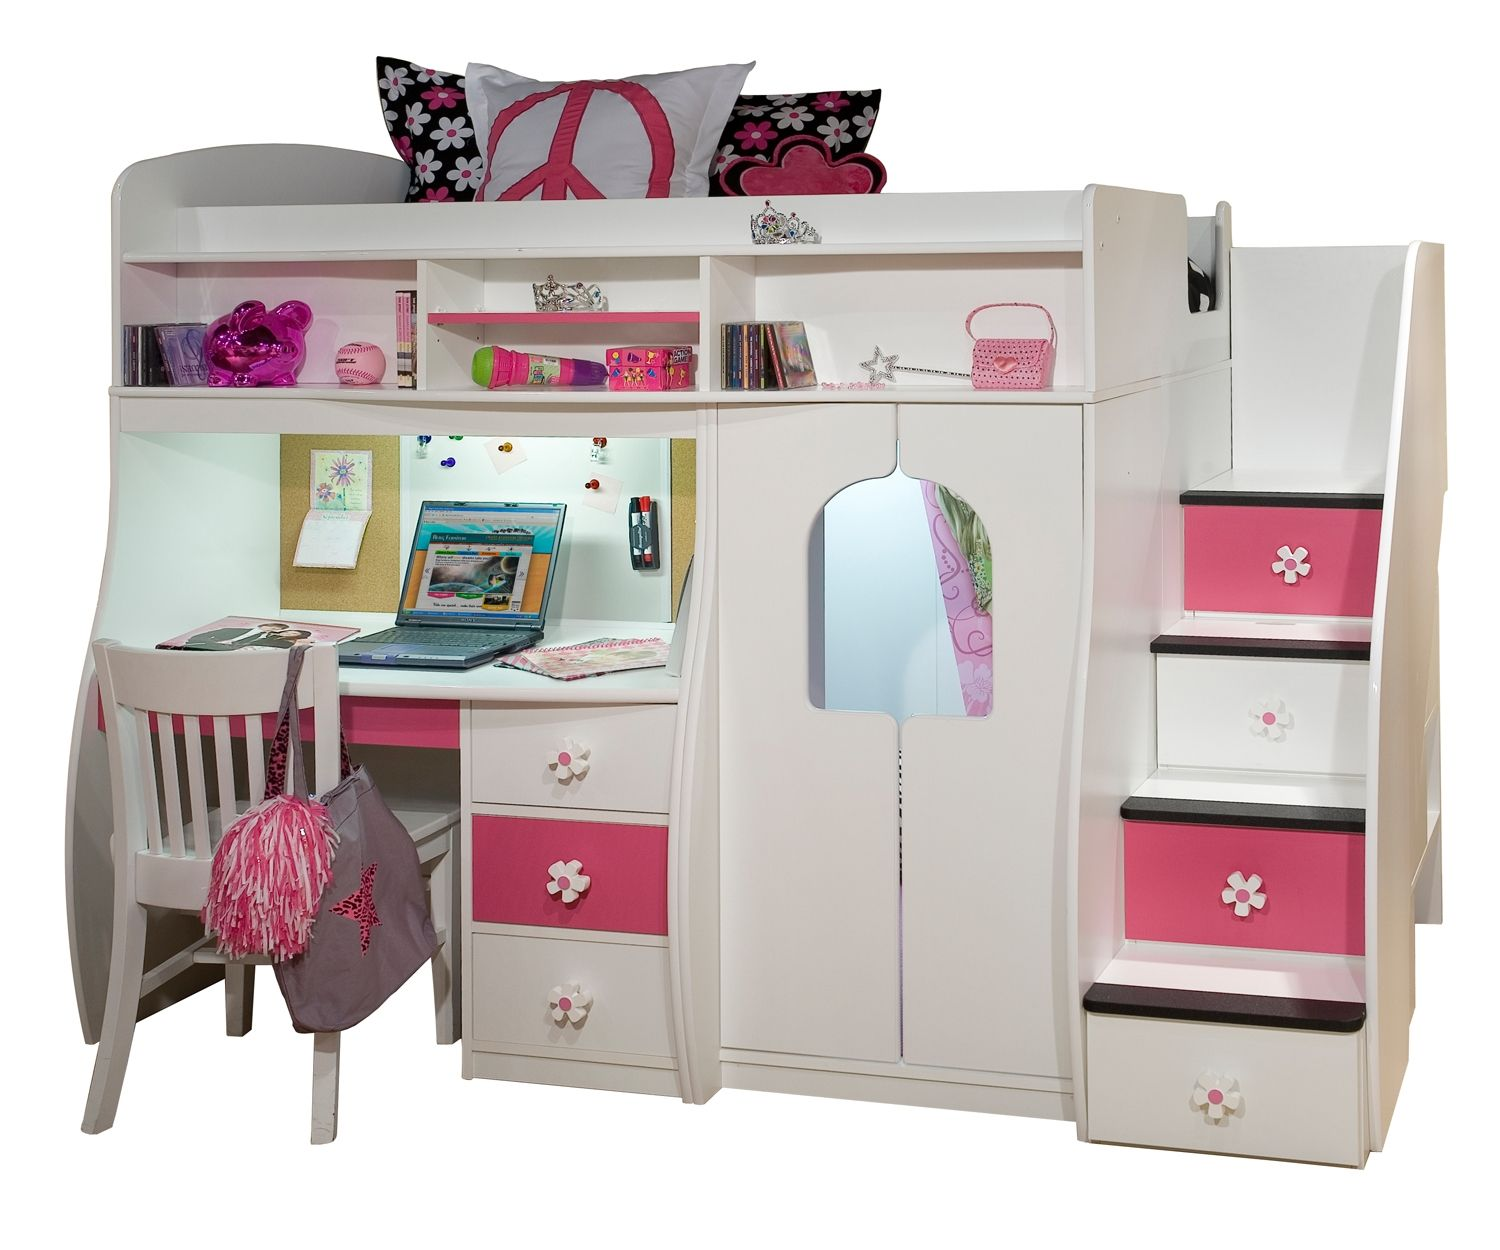 twin dressers desk junior maxtrix dhp bedroom loft cool girls shelves build scenic castle plans steps kids madison size bed corliving single pink princess and white tower amp low with two